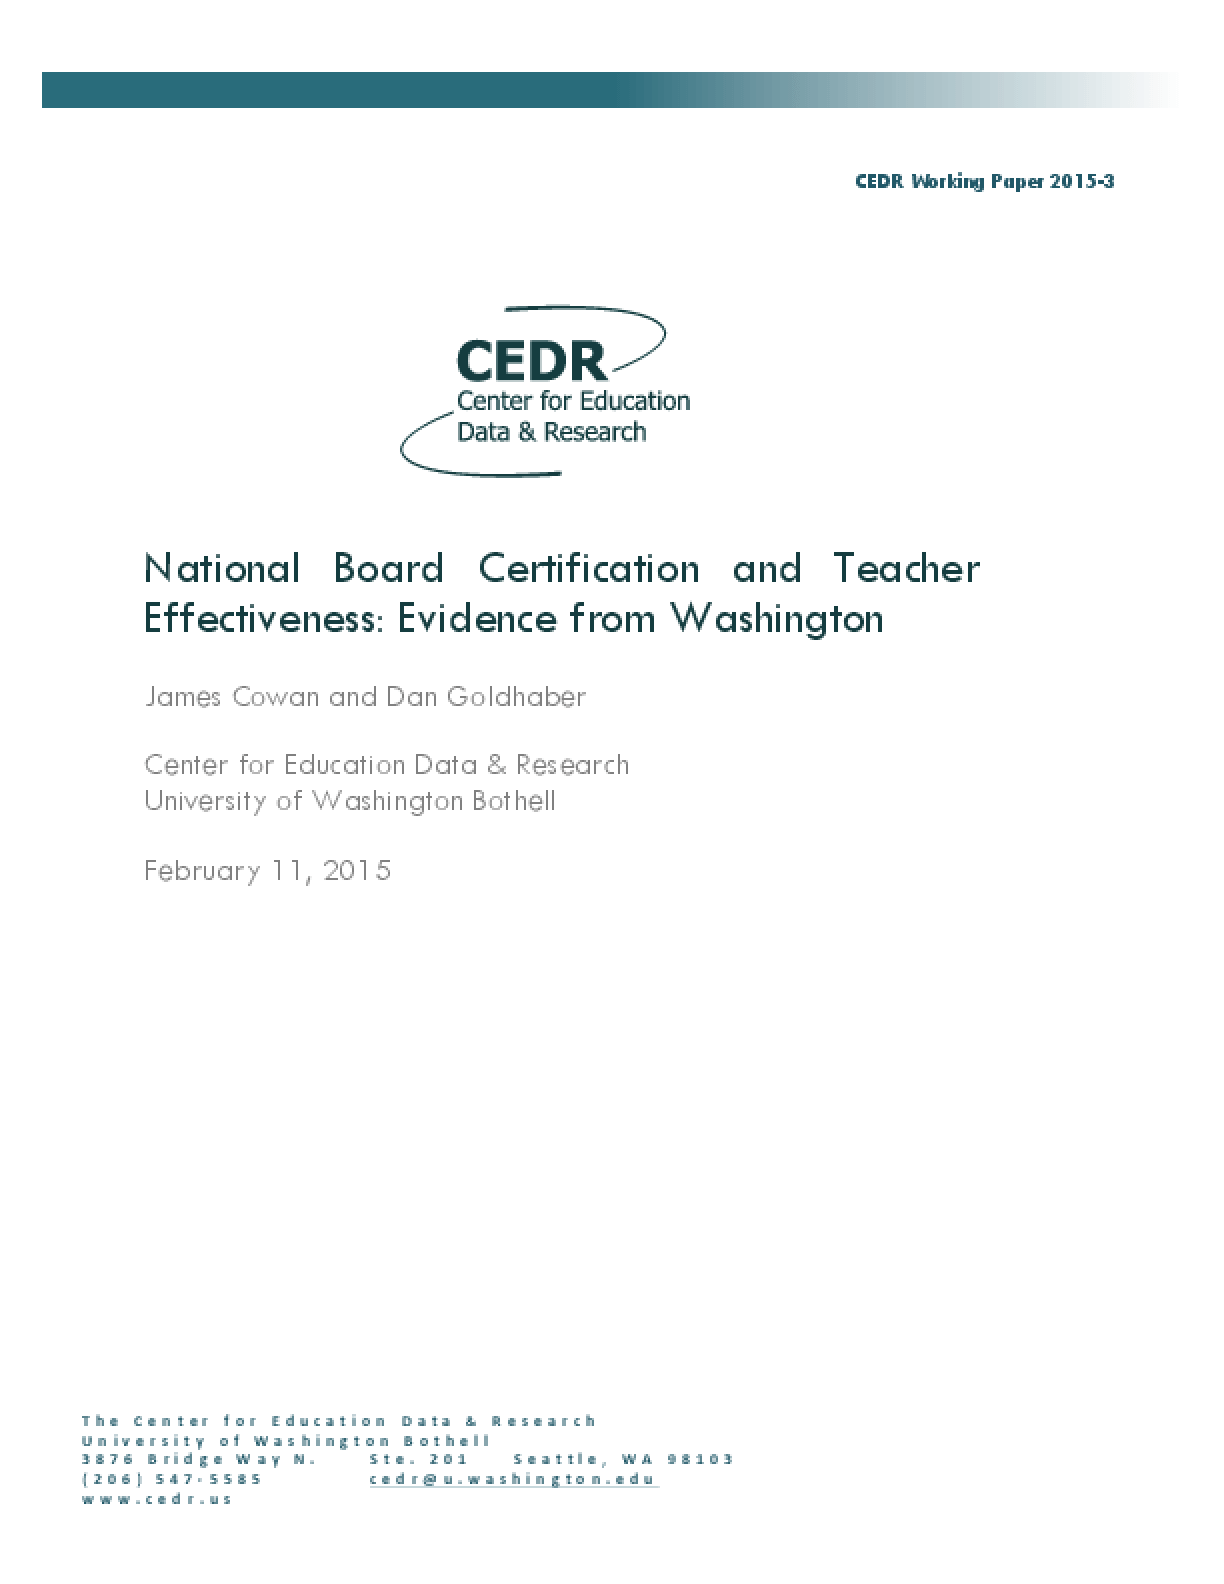 National Board Certification And Teacher Effectiveness Evidence